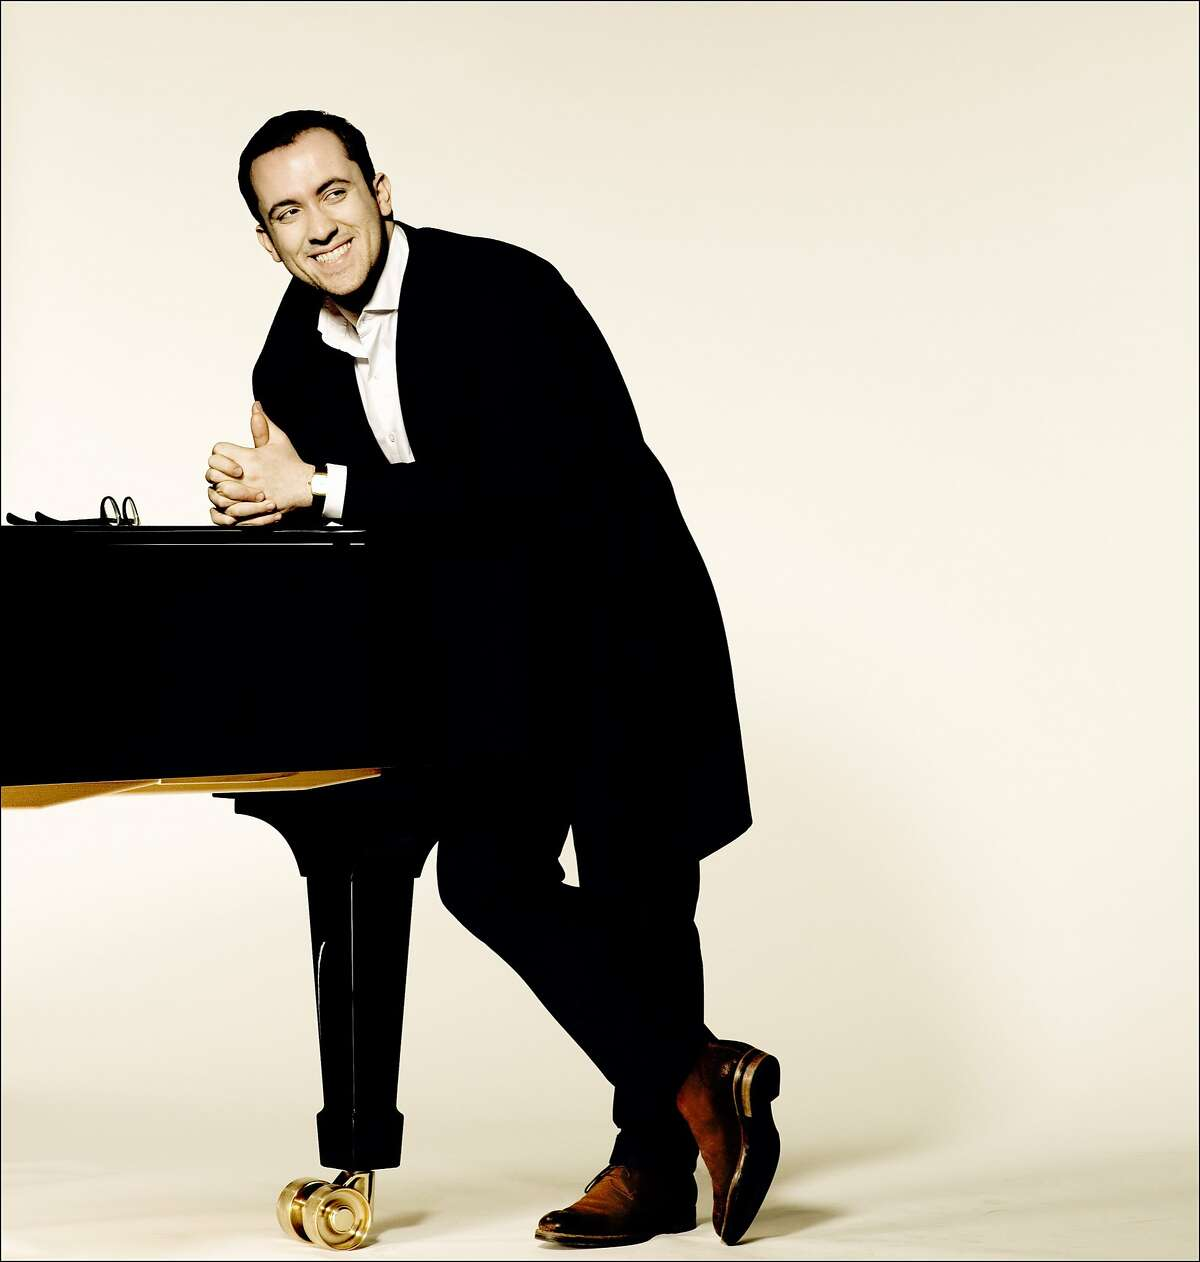 Pianist Igor Levit performs Thursday at the San Francisco Conservatory of Music